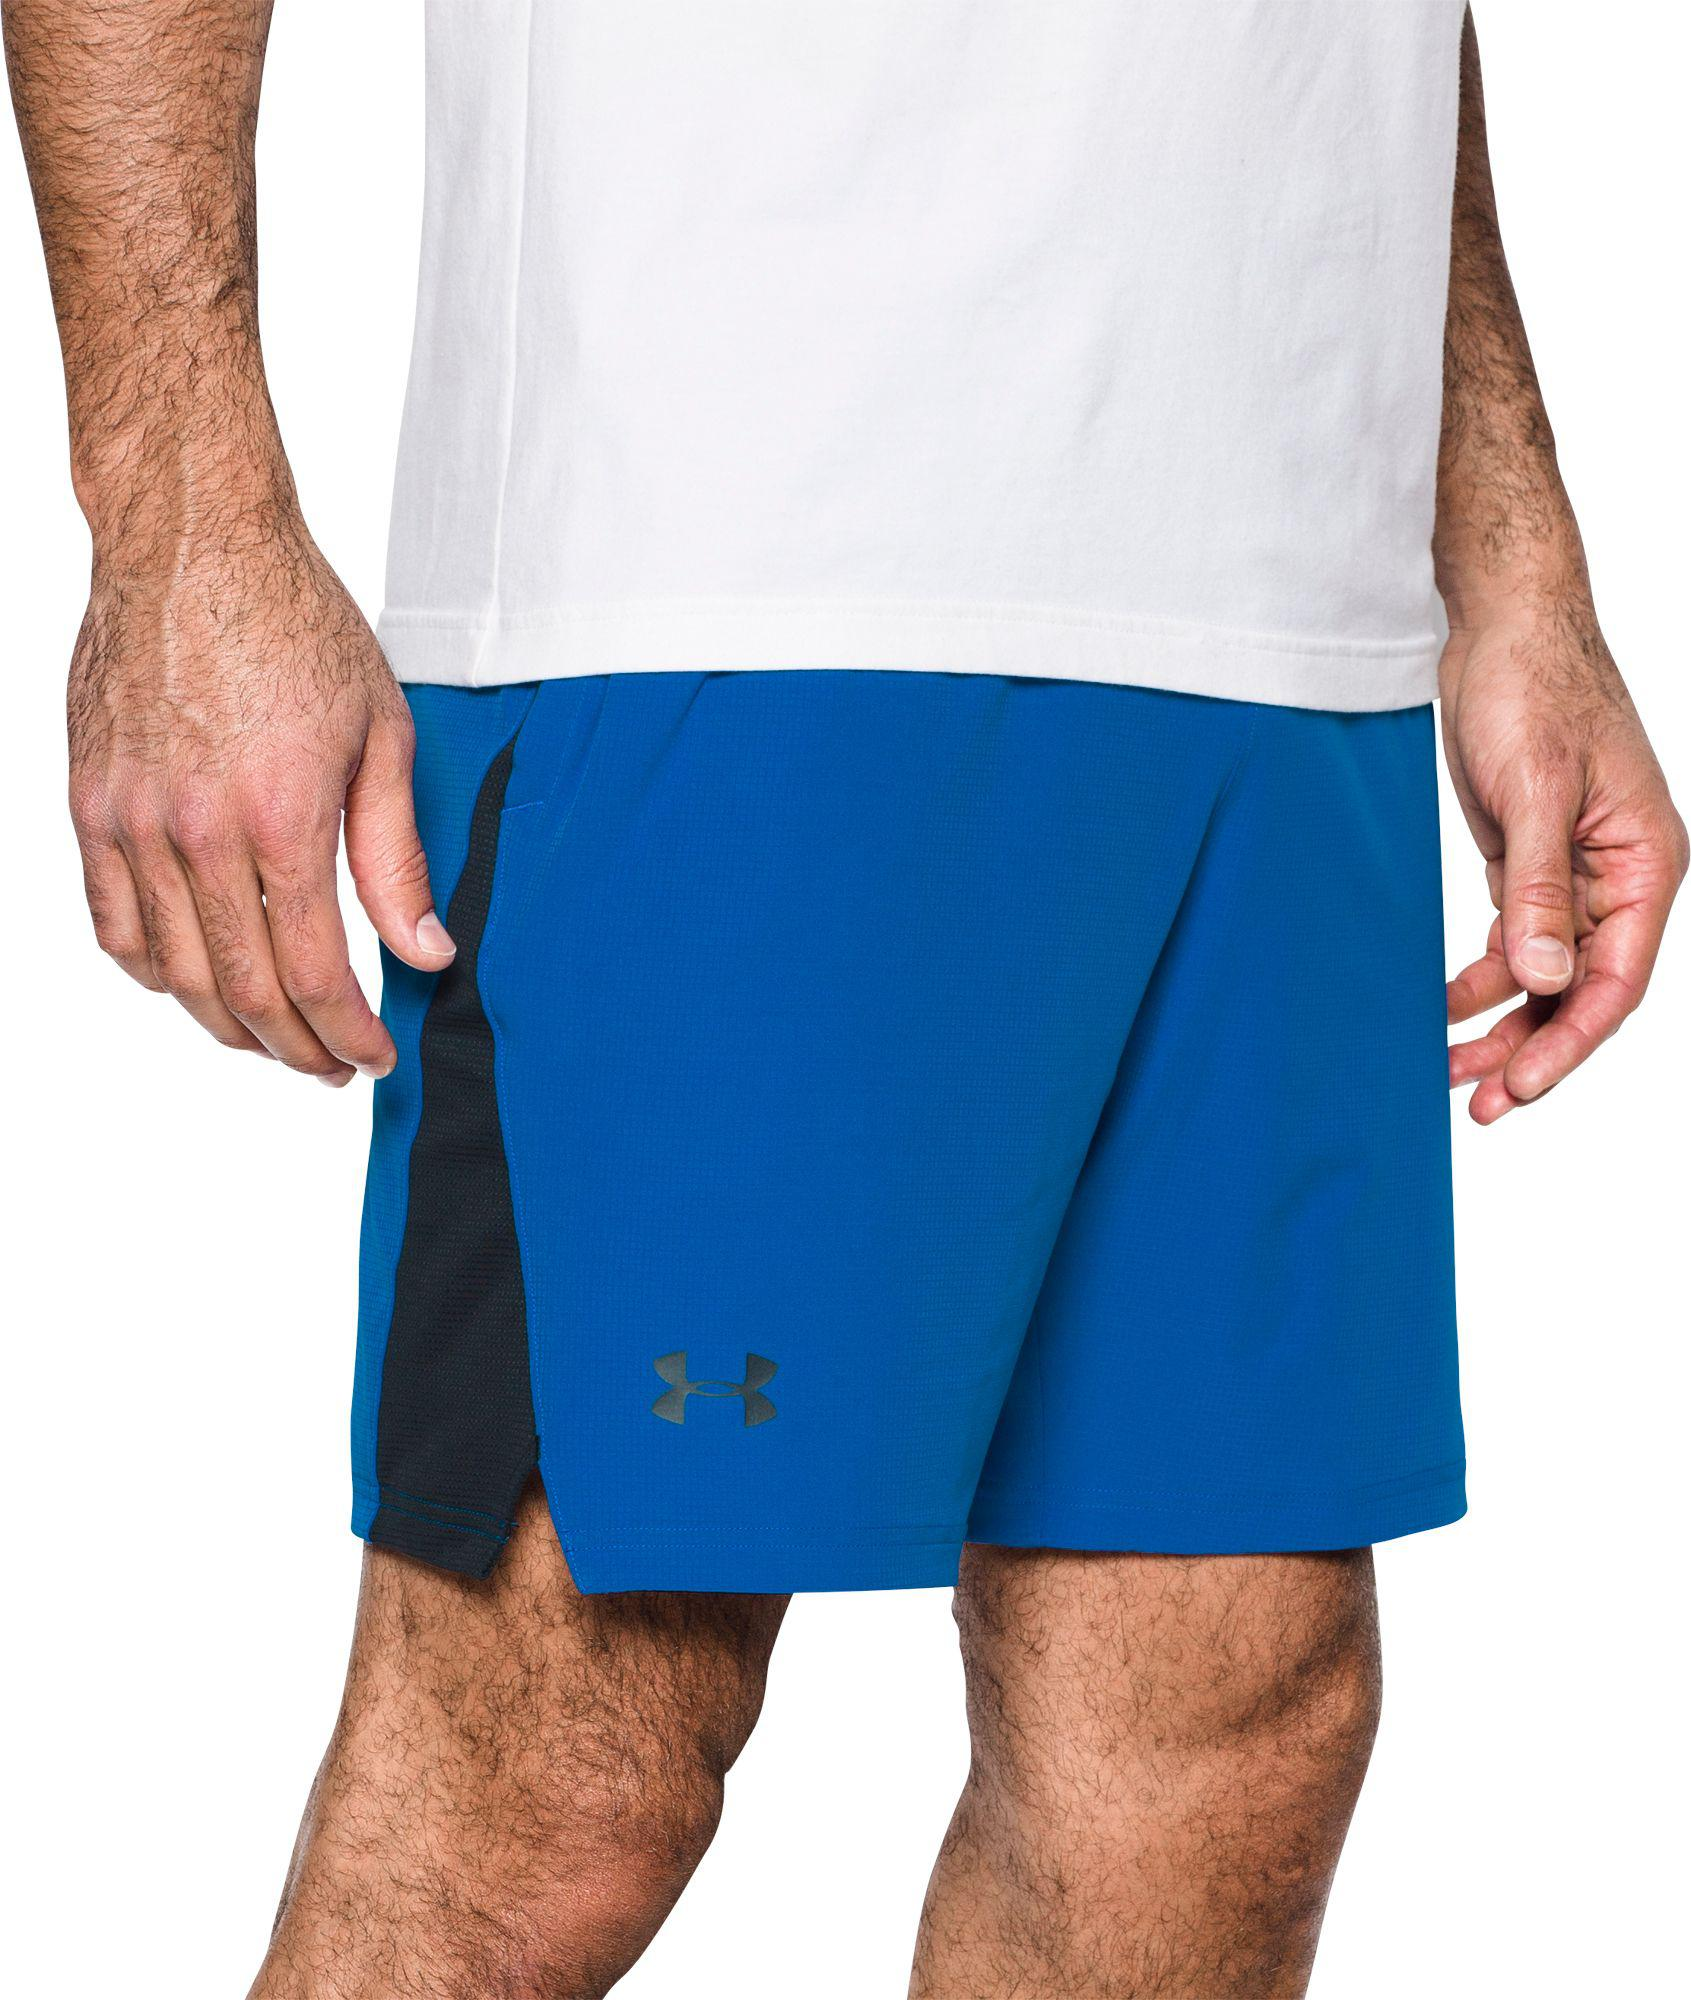 91de7856de28 Lyst - Under Armour Cage Shorts in Blue for Men